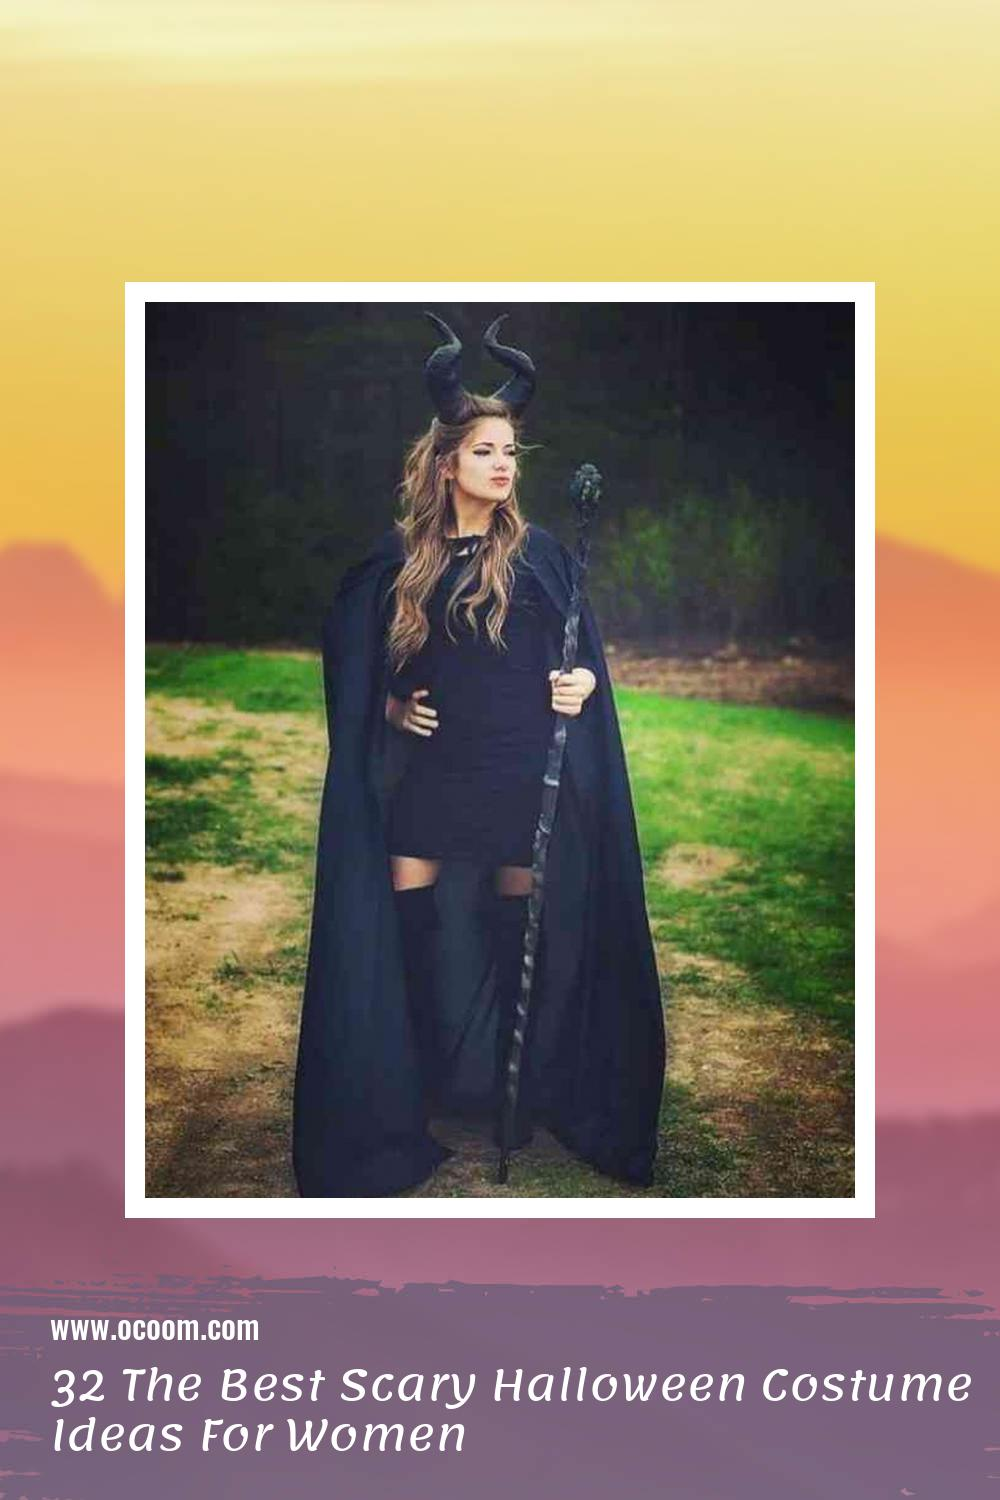 32 The Best Scary Halloween Costume Ideas For Women 14